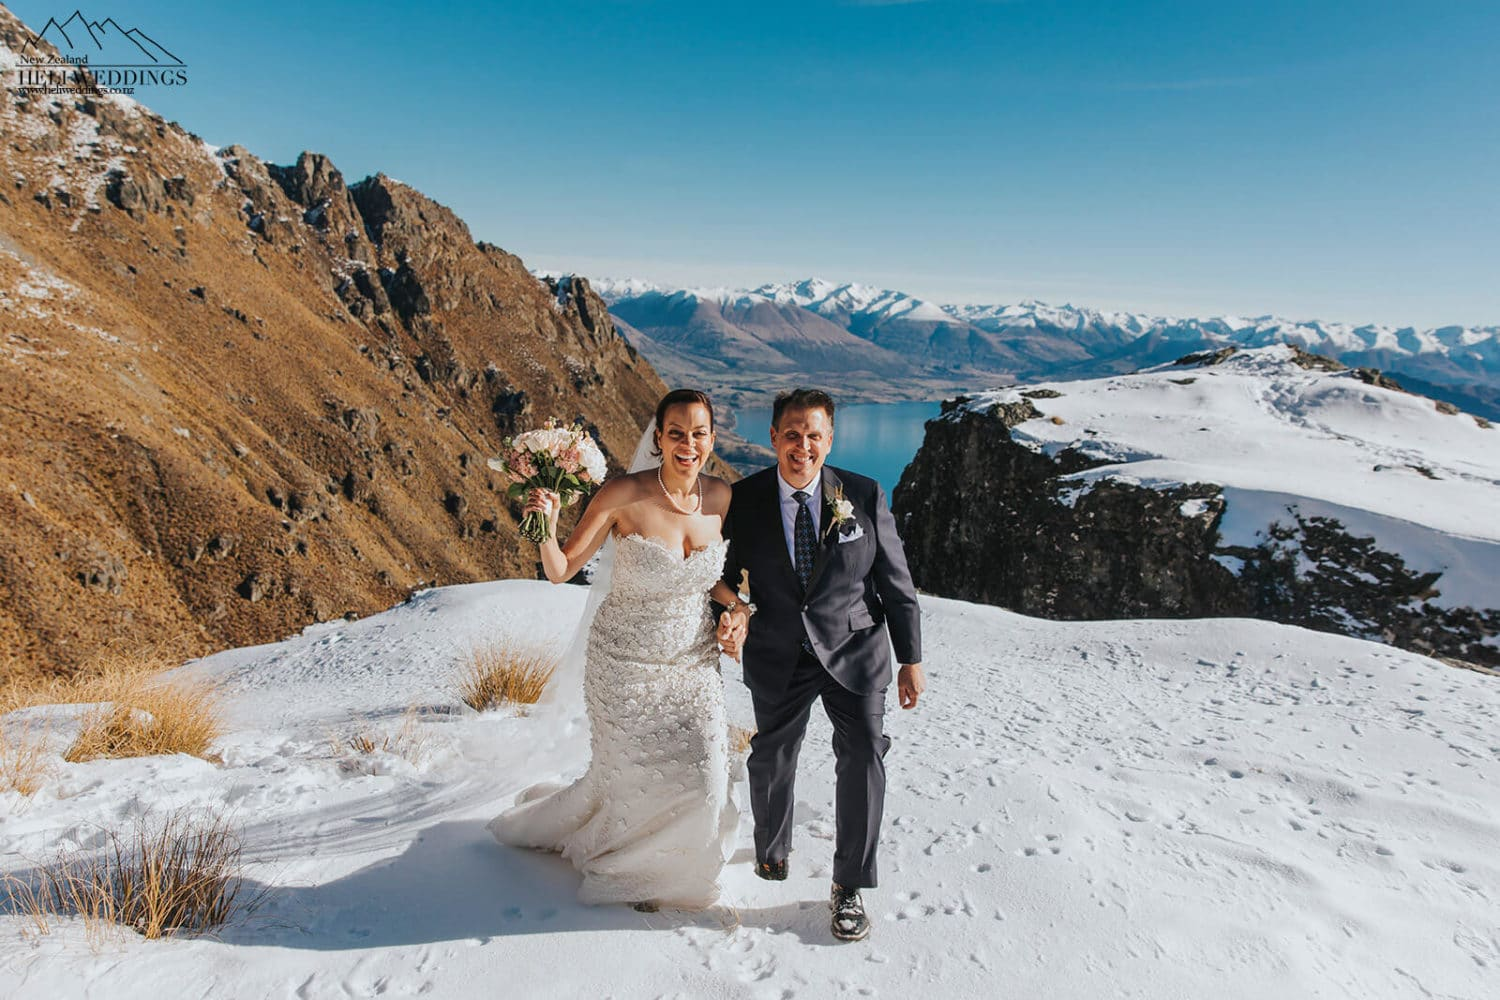 Winter wedding on The Ledge in Queenstown